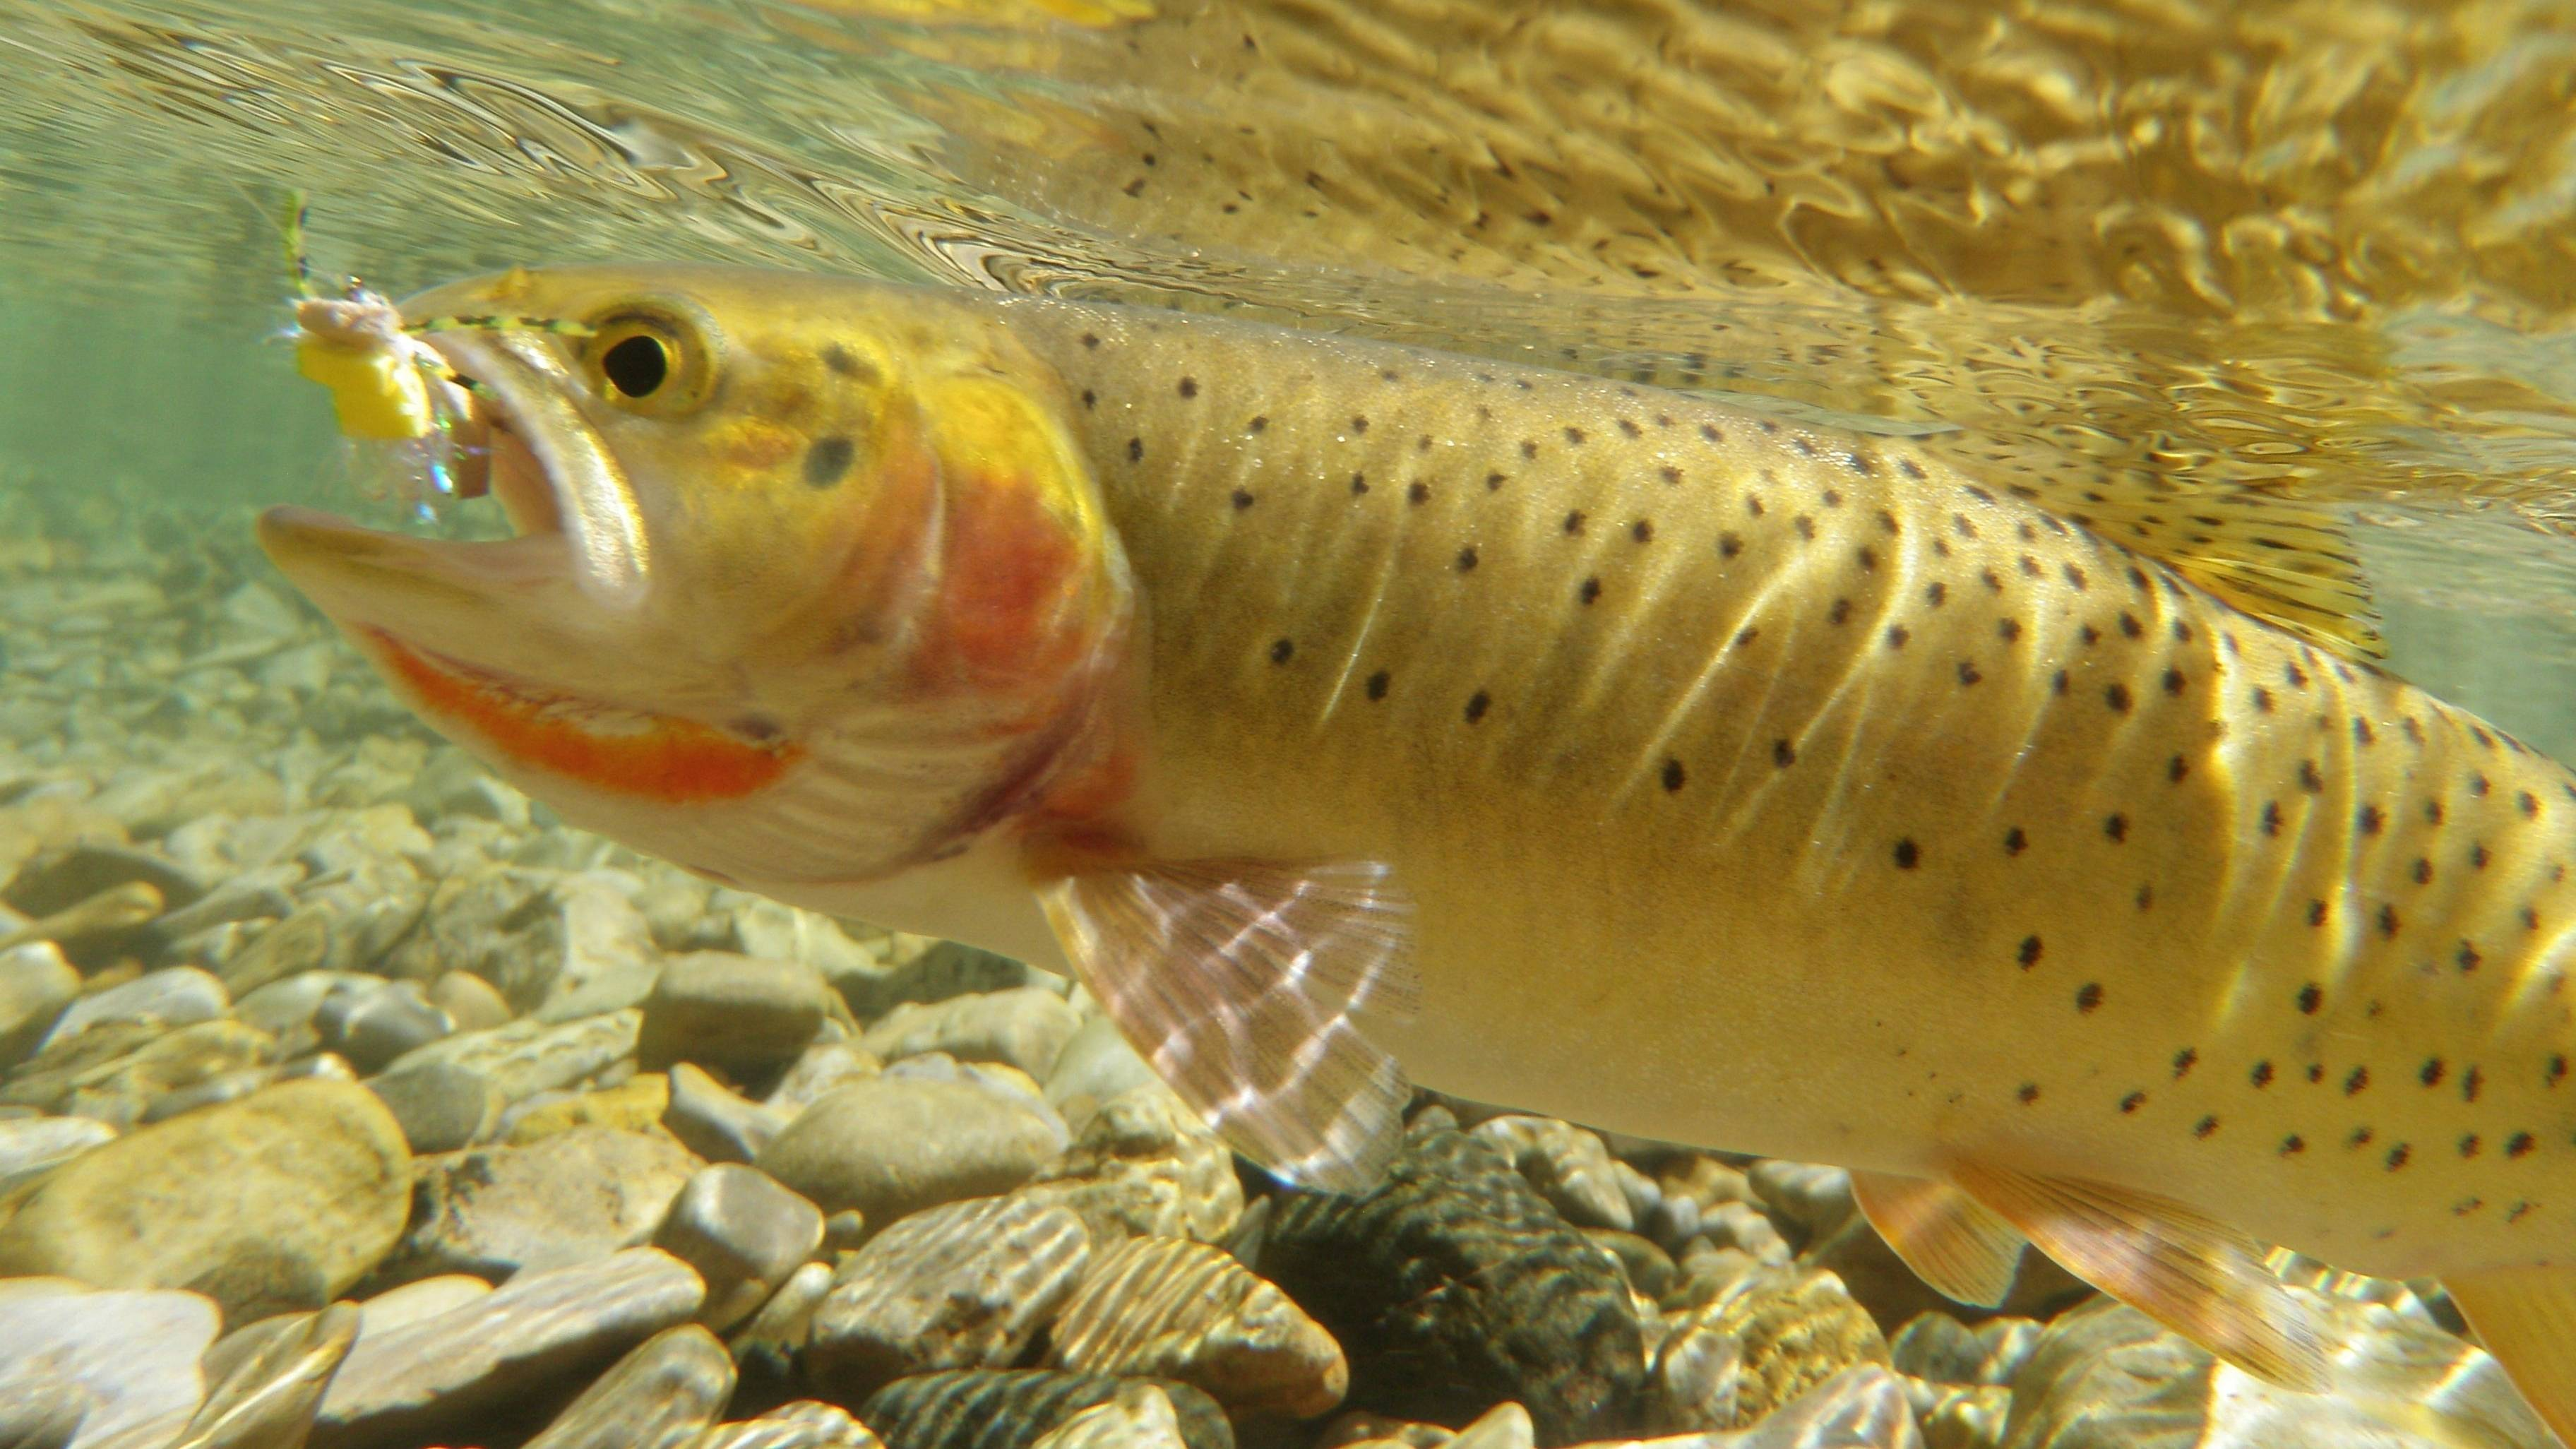 trout fly fishing wallpaper - photo #34